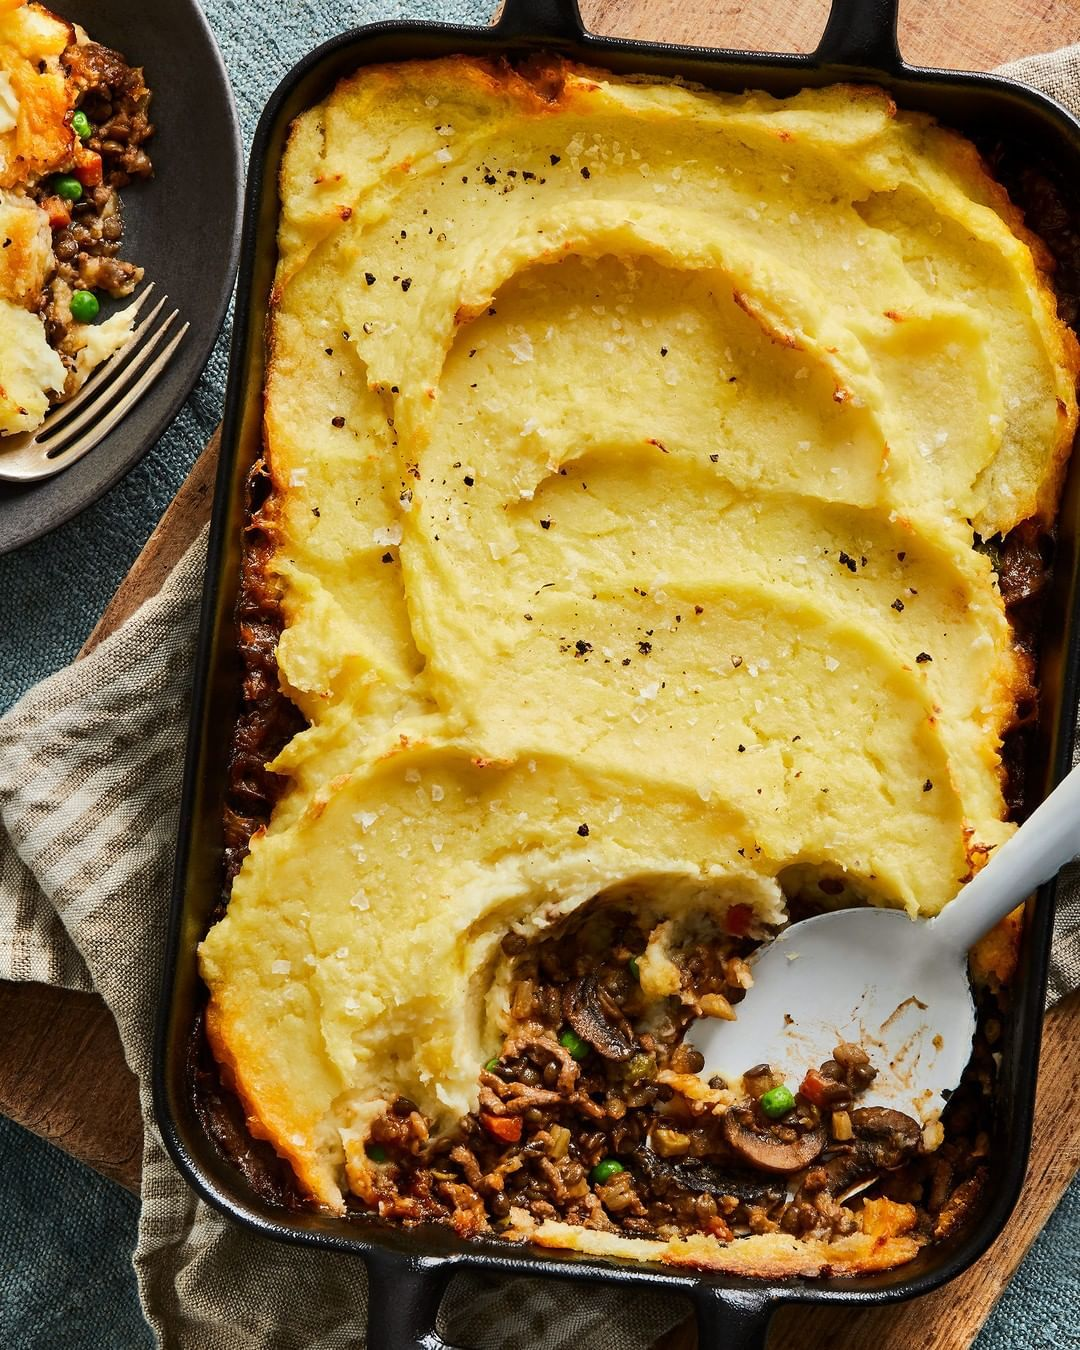 Food52 On Instagram Ruhbekuhlee S Version Of Shepherd S Pie Takes The Things We Love Fluffy Mashed Potato In 2020 Recipes Best Shepherds Pie Recipe Shepherds Pie